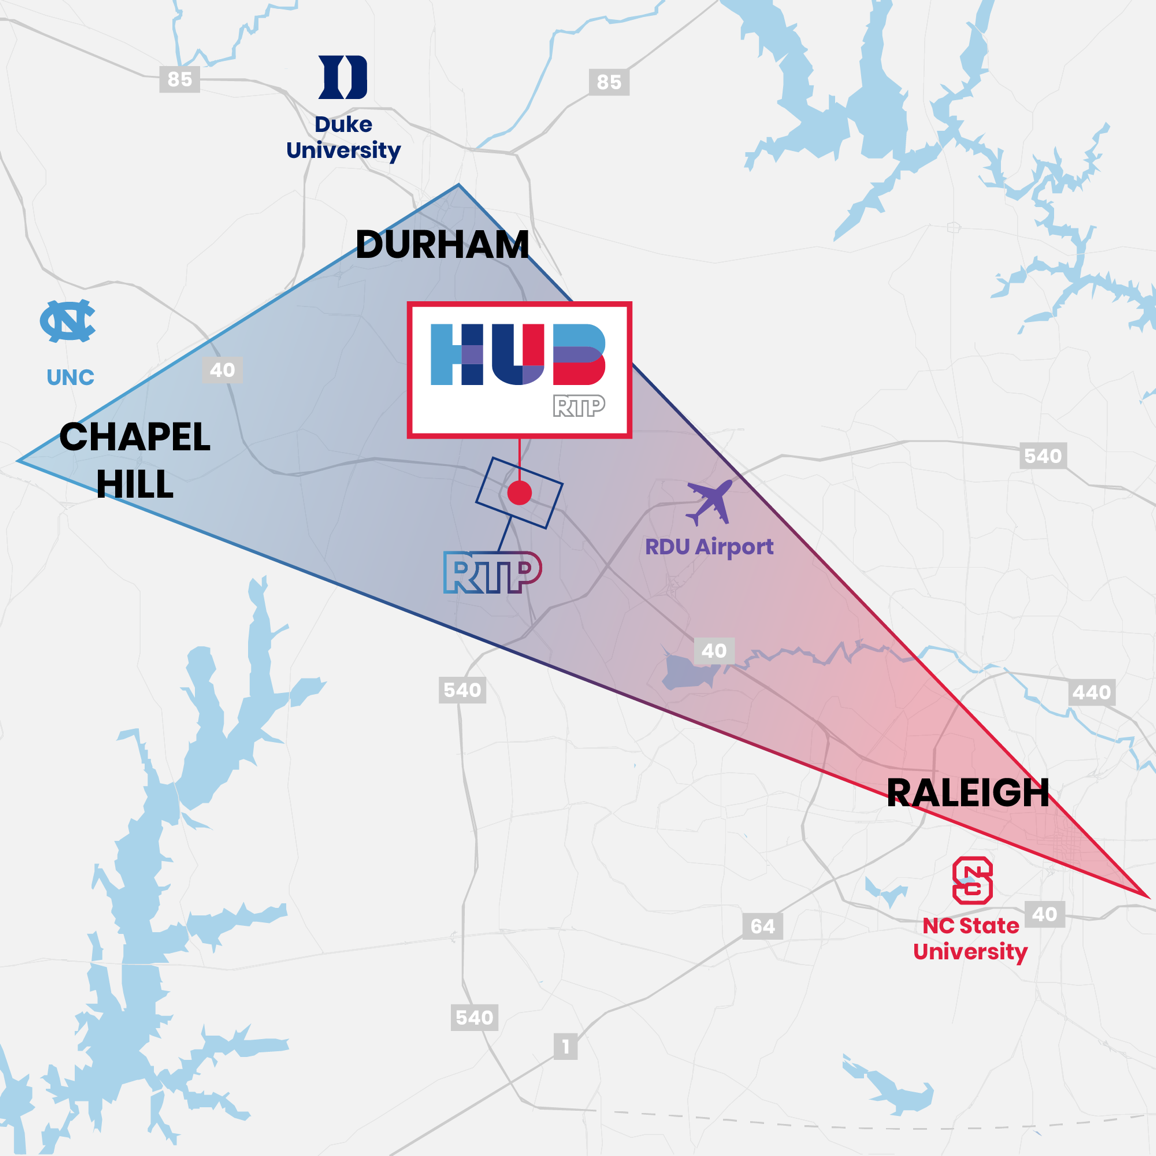 Map of Hub RTP's location, right in the middle of Raleigh (NC State University), Durham (Duke University), and Chapel Hill (UNC).